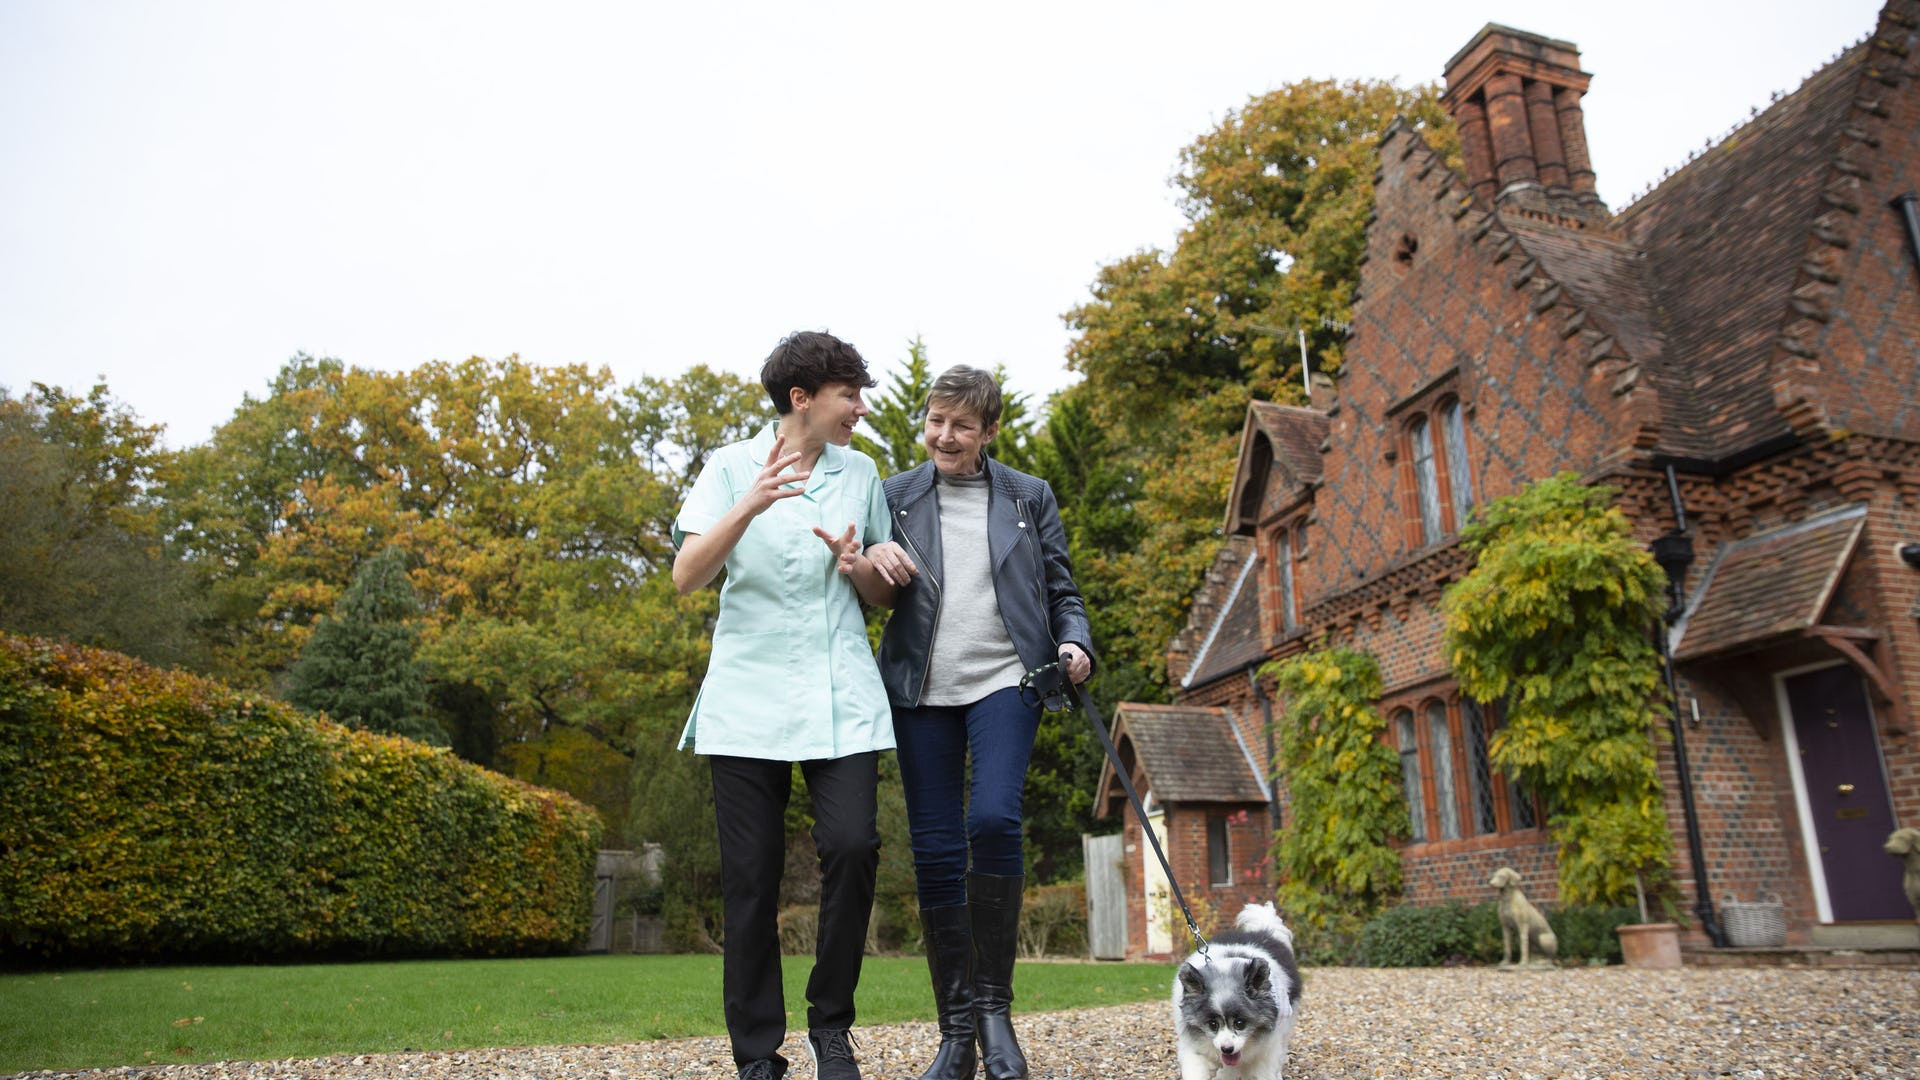 Carer and Client outside walking a dog